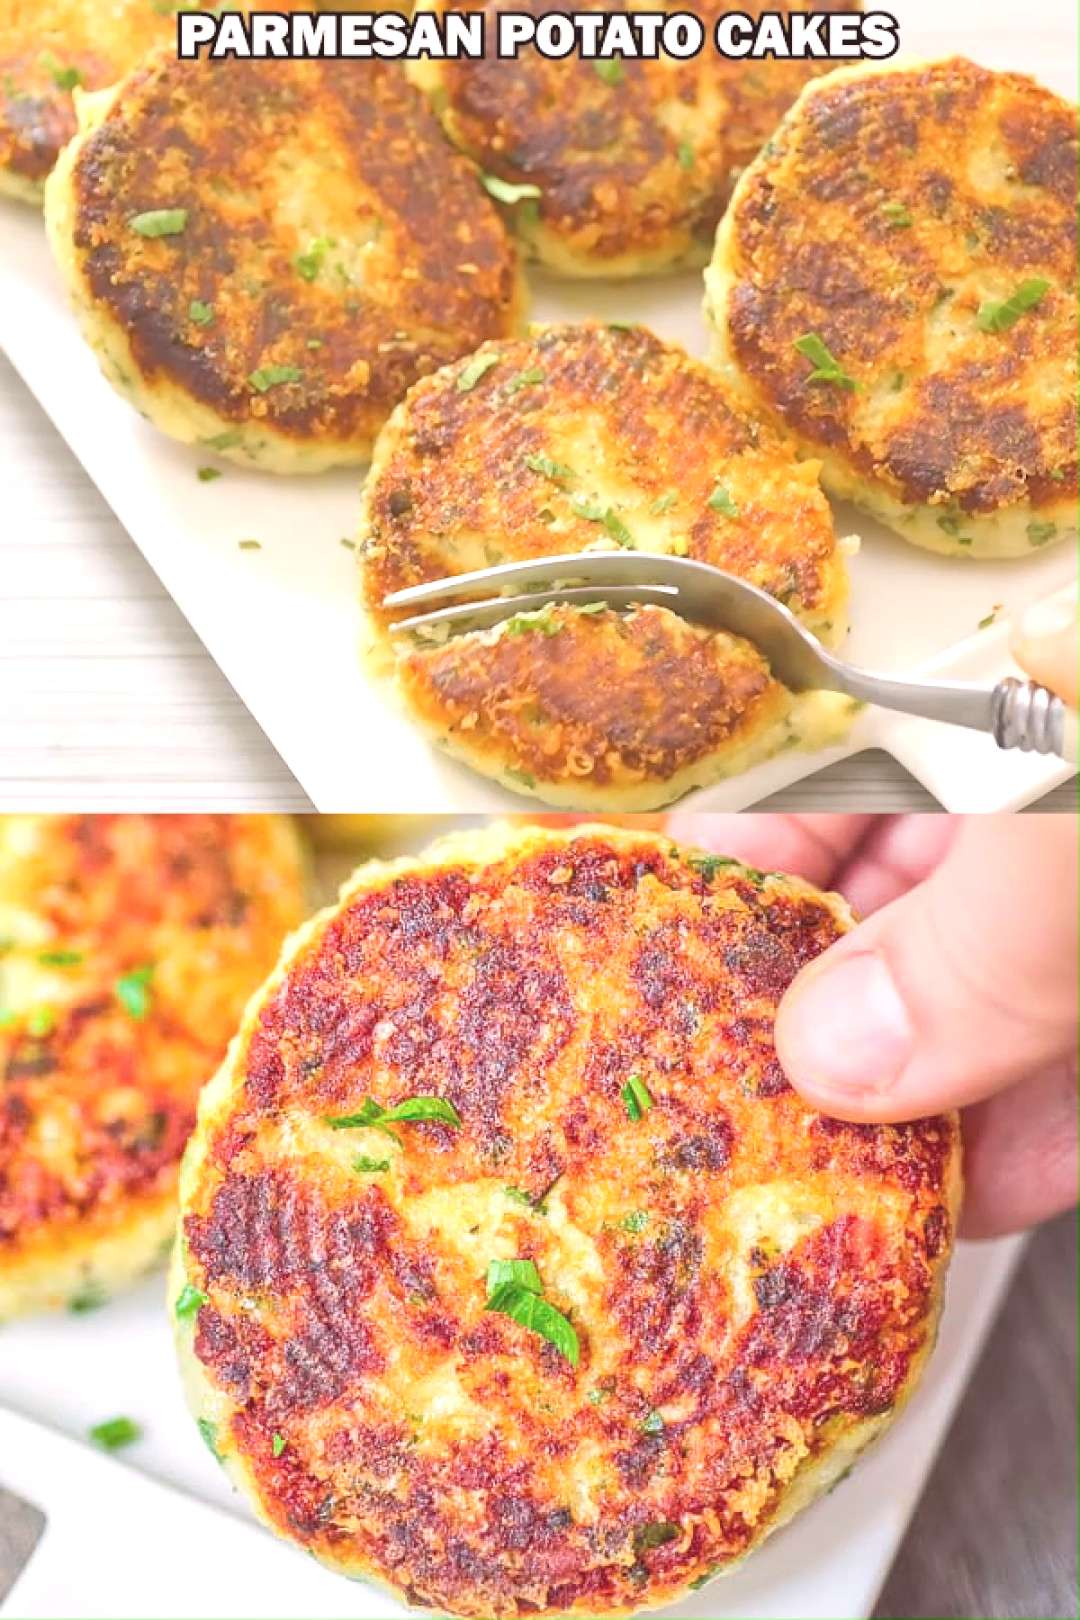 Parmesan Mashed Potato Cakes - Of all the new recipes I've made recently, these Parmesan Potato